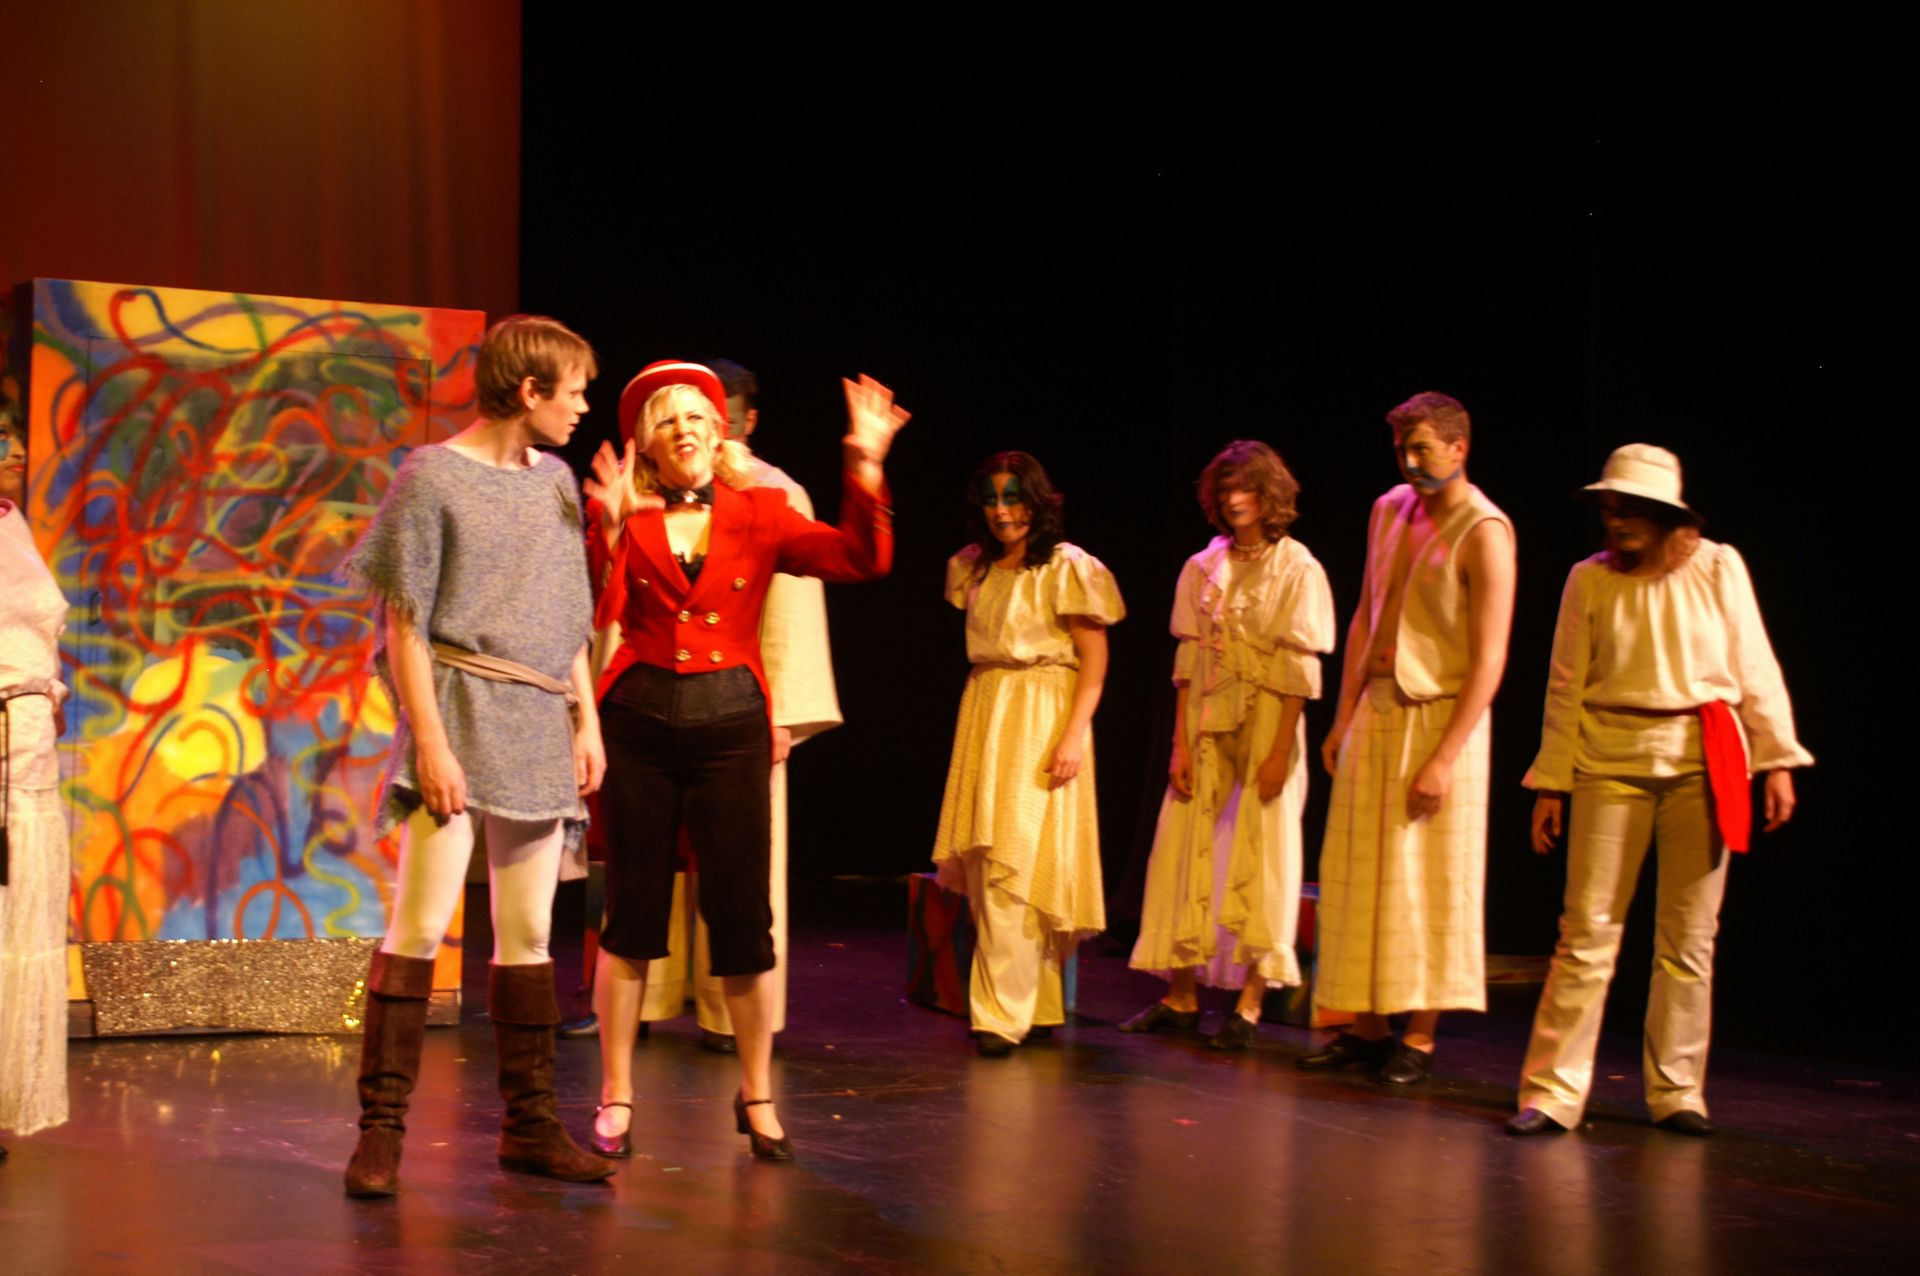 Darren Stewart, Lindsay Kurtze, Rosemary Van Dyk, Emily Ford, Jordan Collalto and Jane Phillips in Pippin